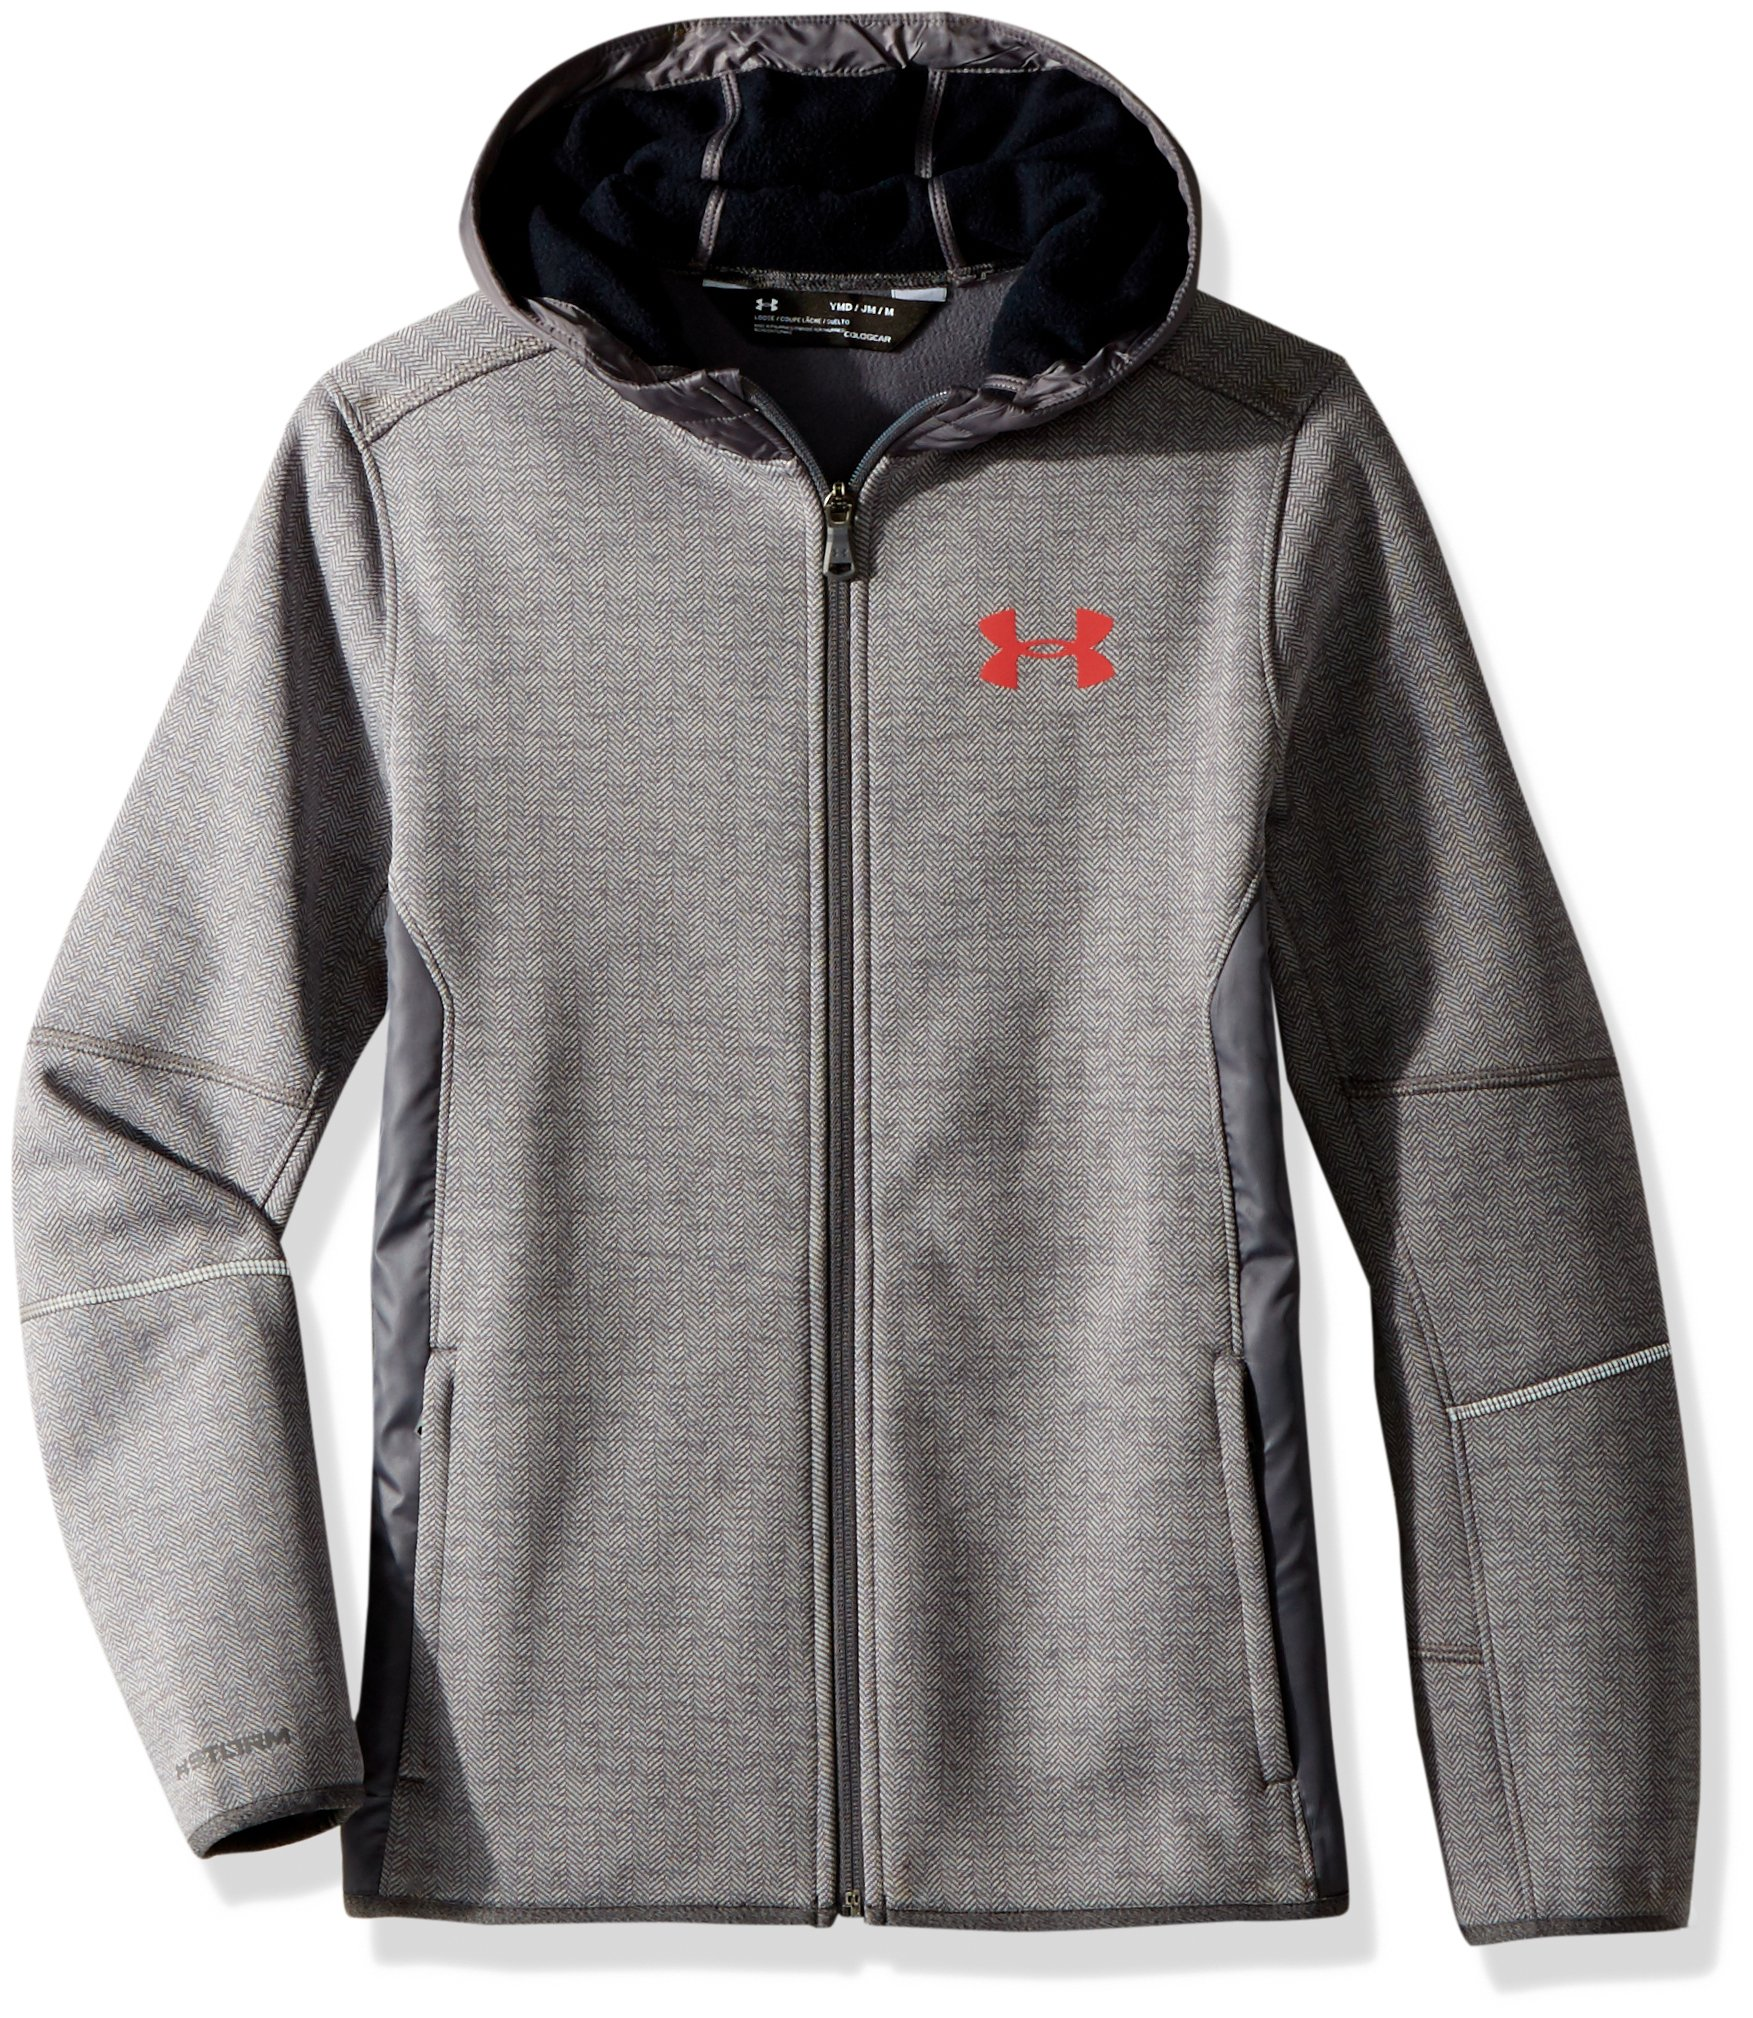 Under Armour Boys Full Zip Swacket,Graphite /Red, Youth X-Small